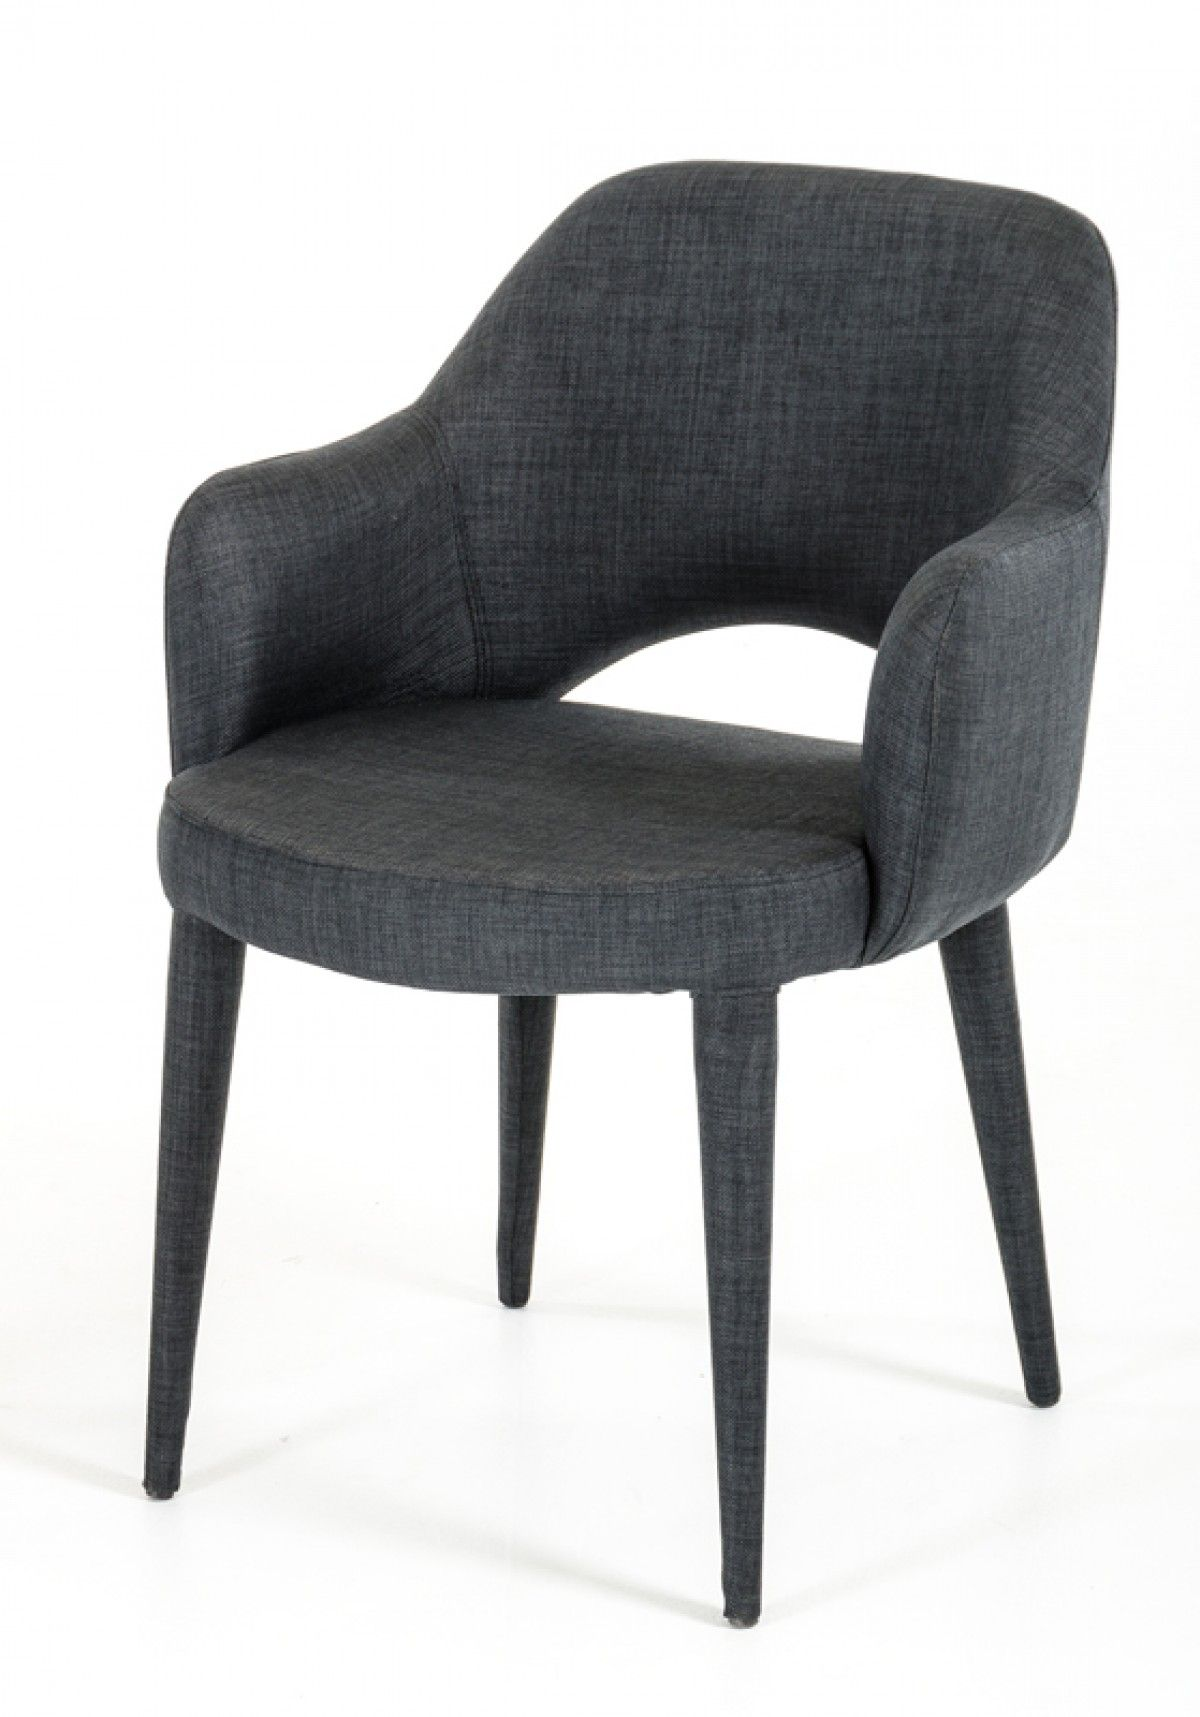 Modrest Williamette Modern Dark Grey Fabric Dining Chair Sletten  # Muebles Leaders Tarragona